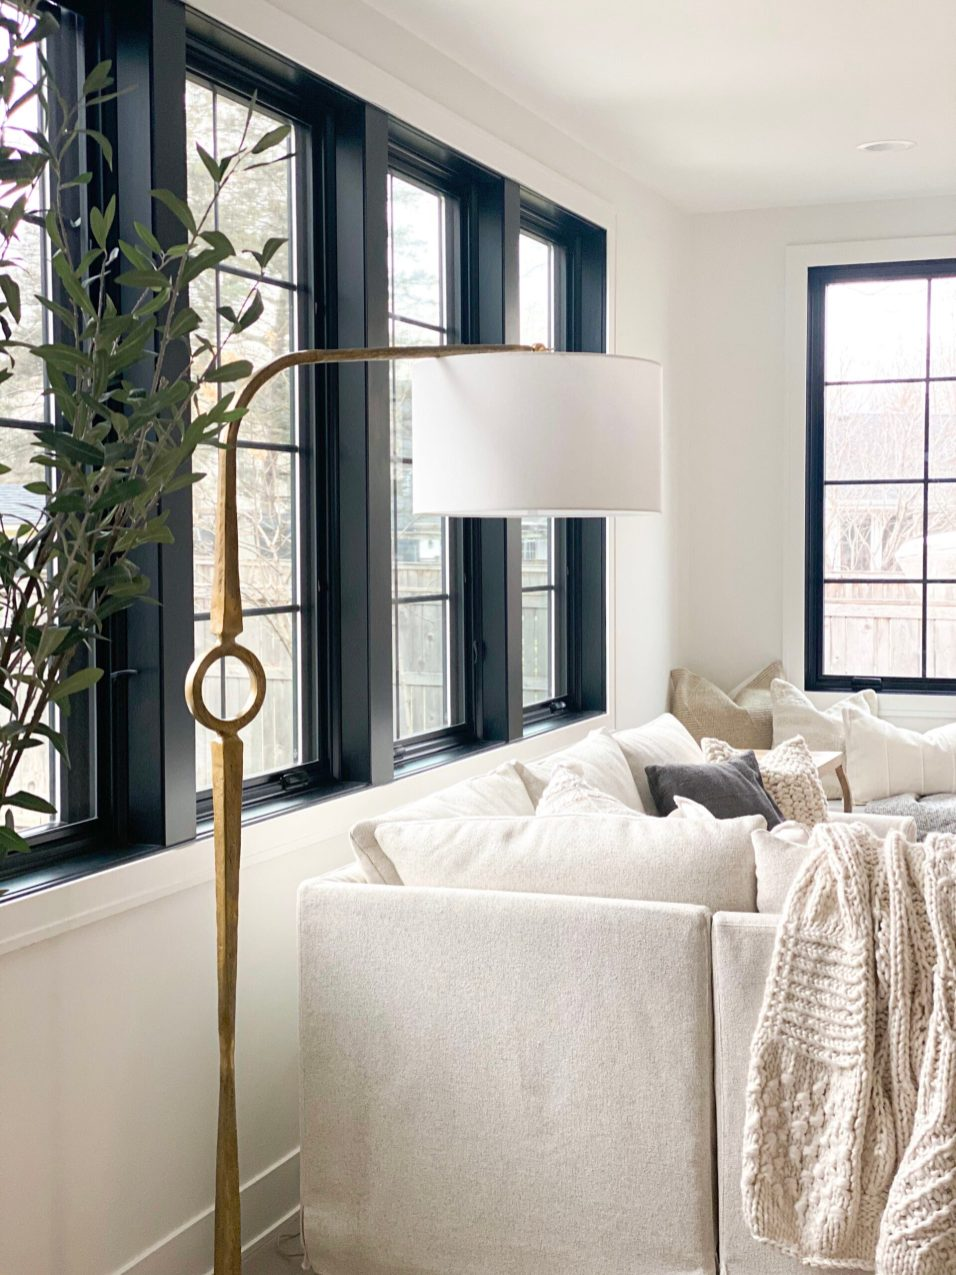 Neutral lamp and ivory couch with cream-colored blanket